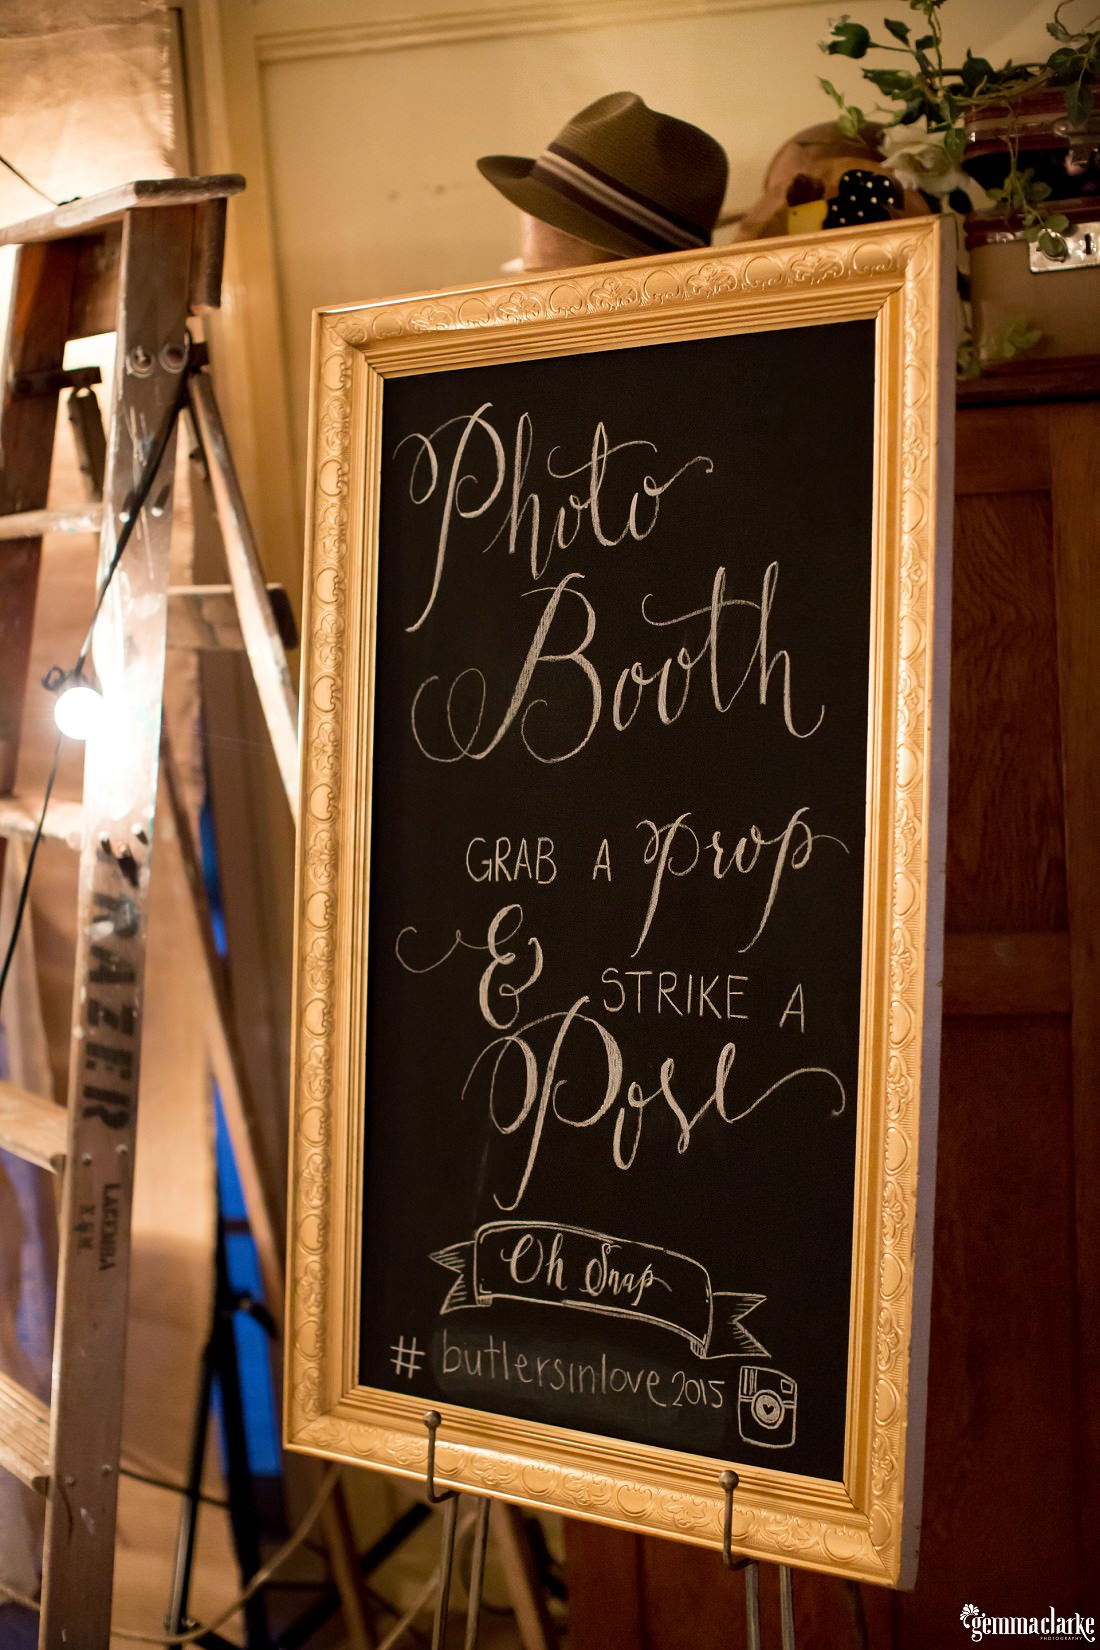 A framed blackboard with chalk writing announcing the photo booth